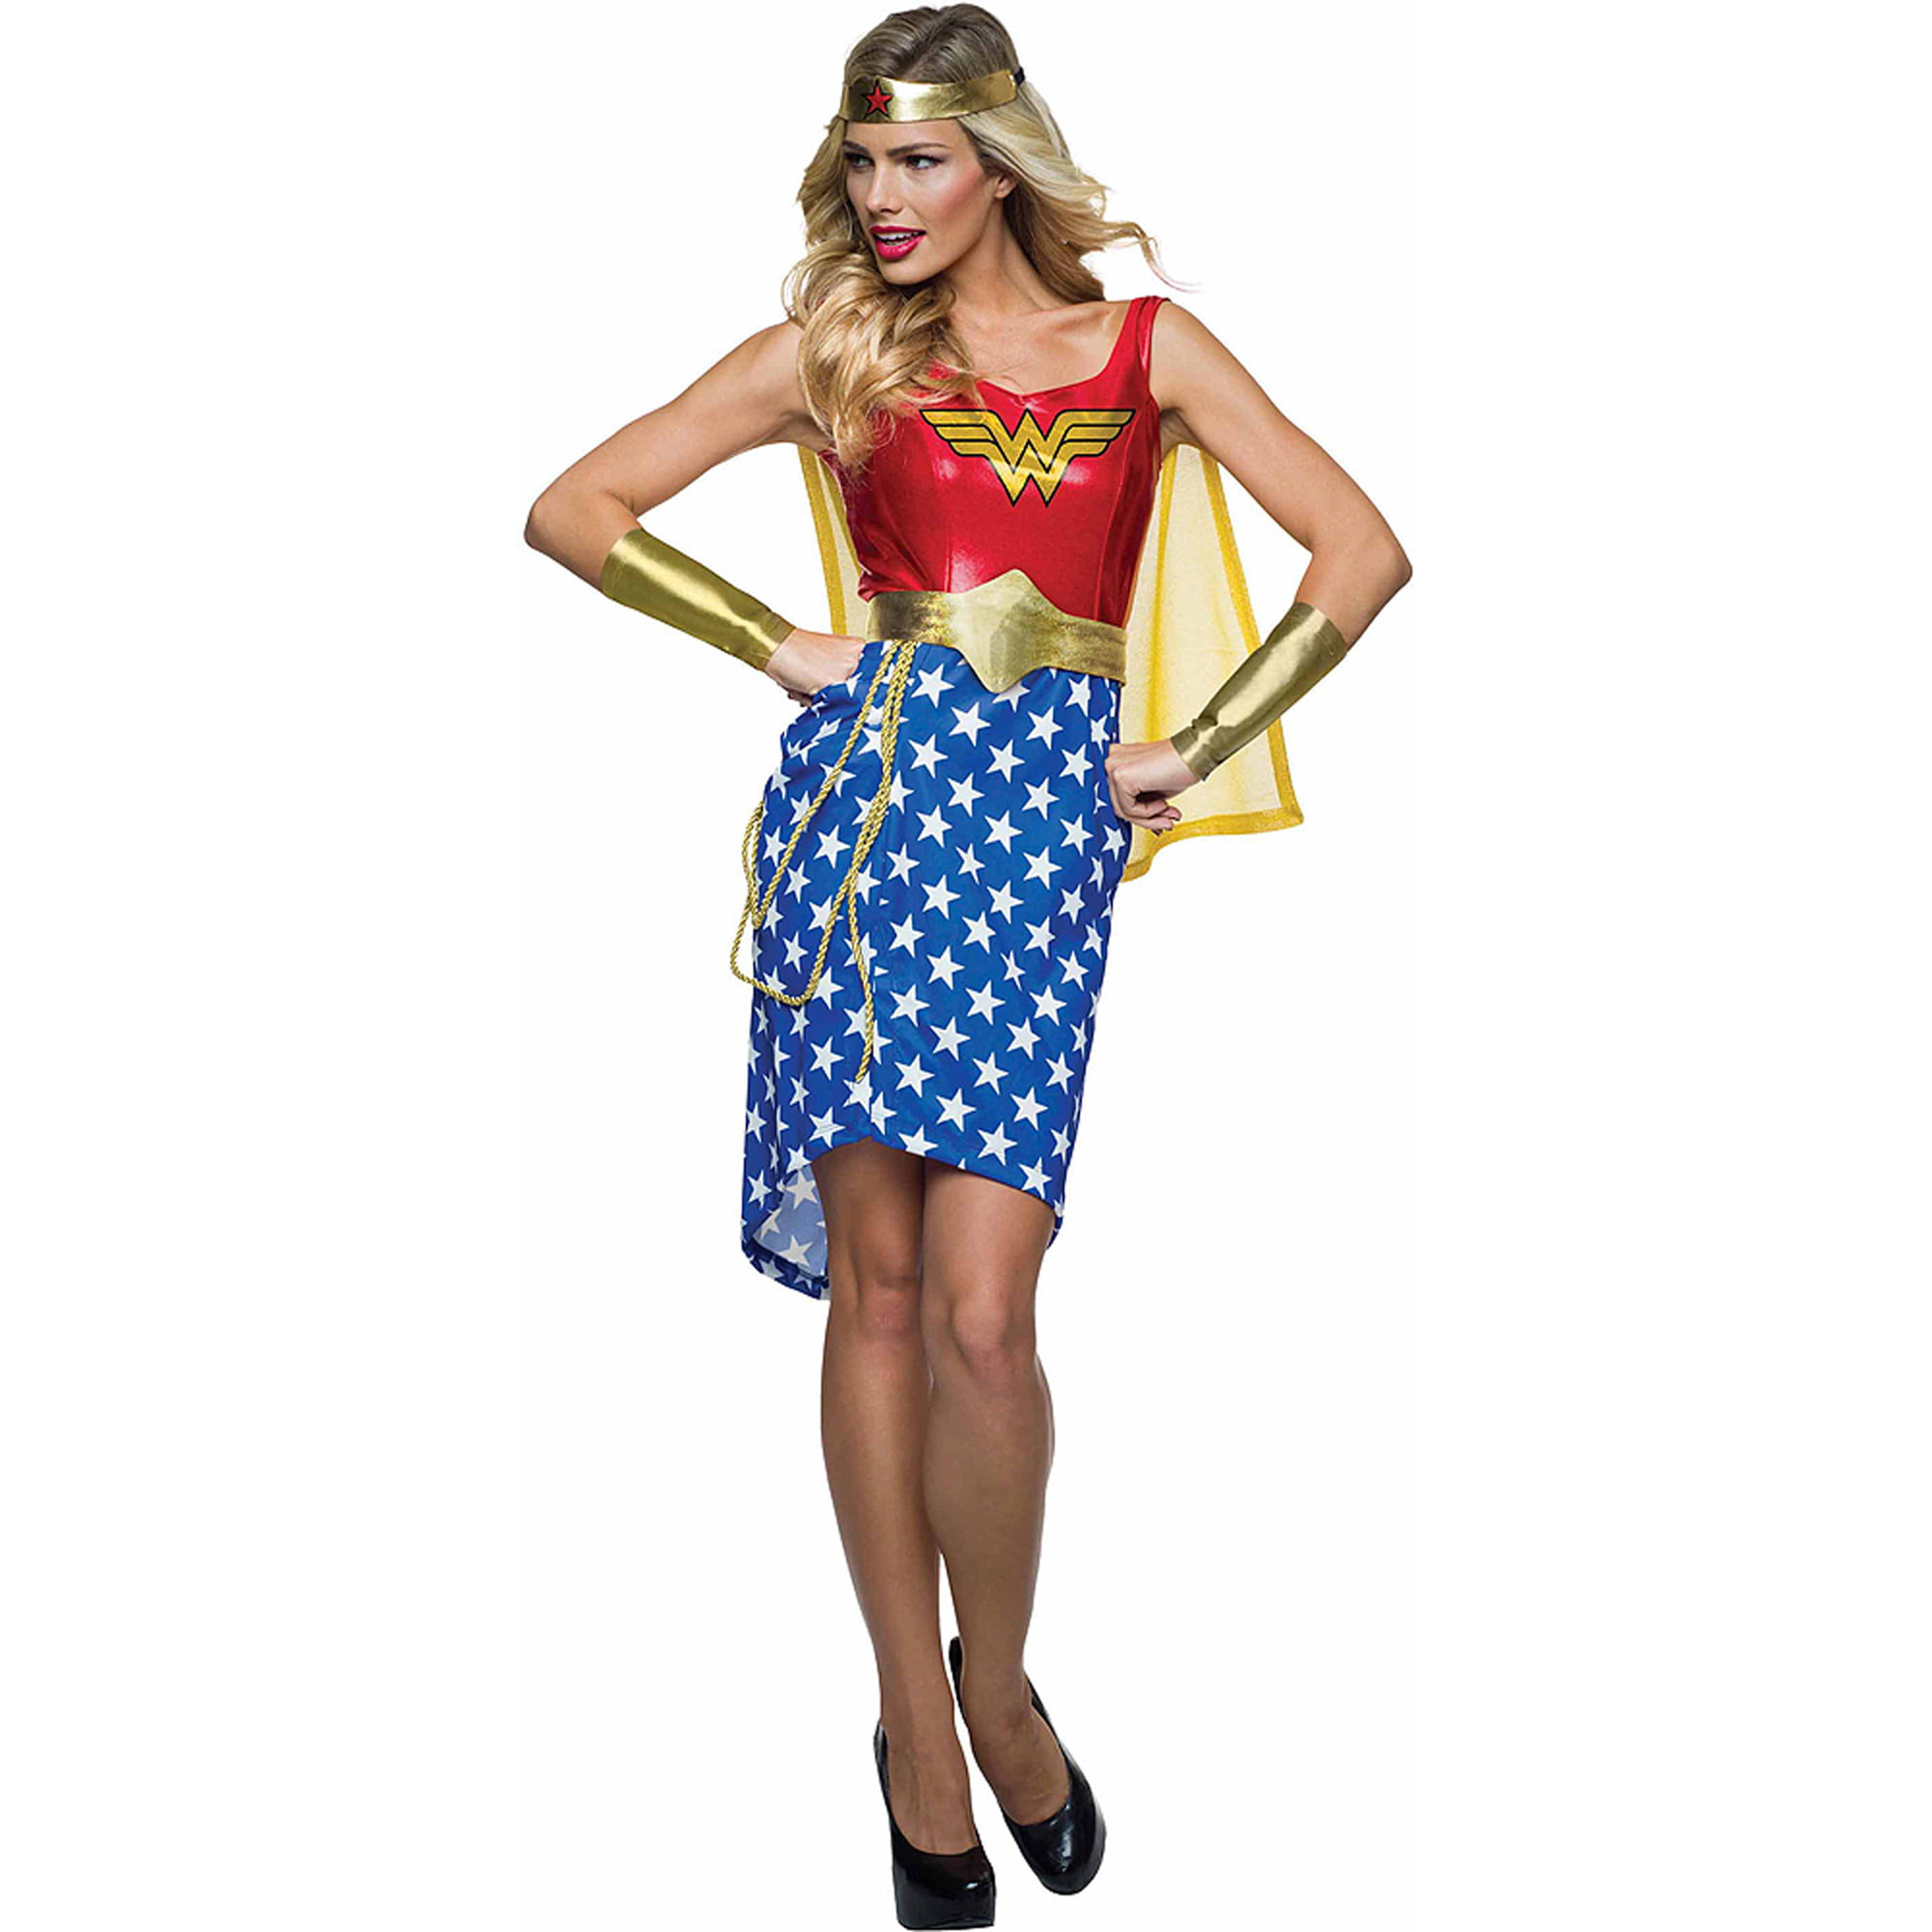 sc 1 st  Walmart & Wonder Woman Metallic Dress Halloween Costume - Walmart.com